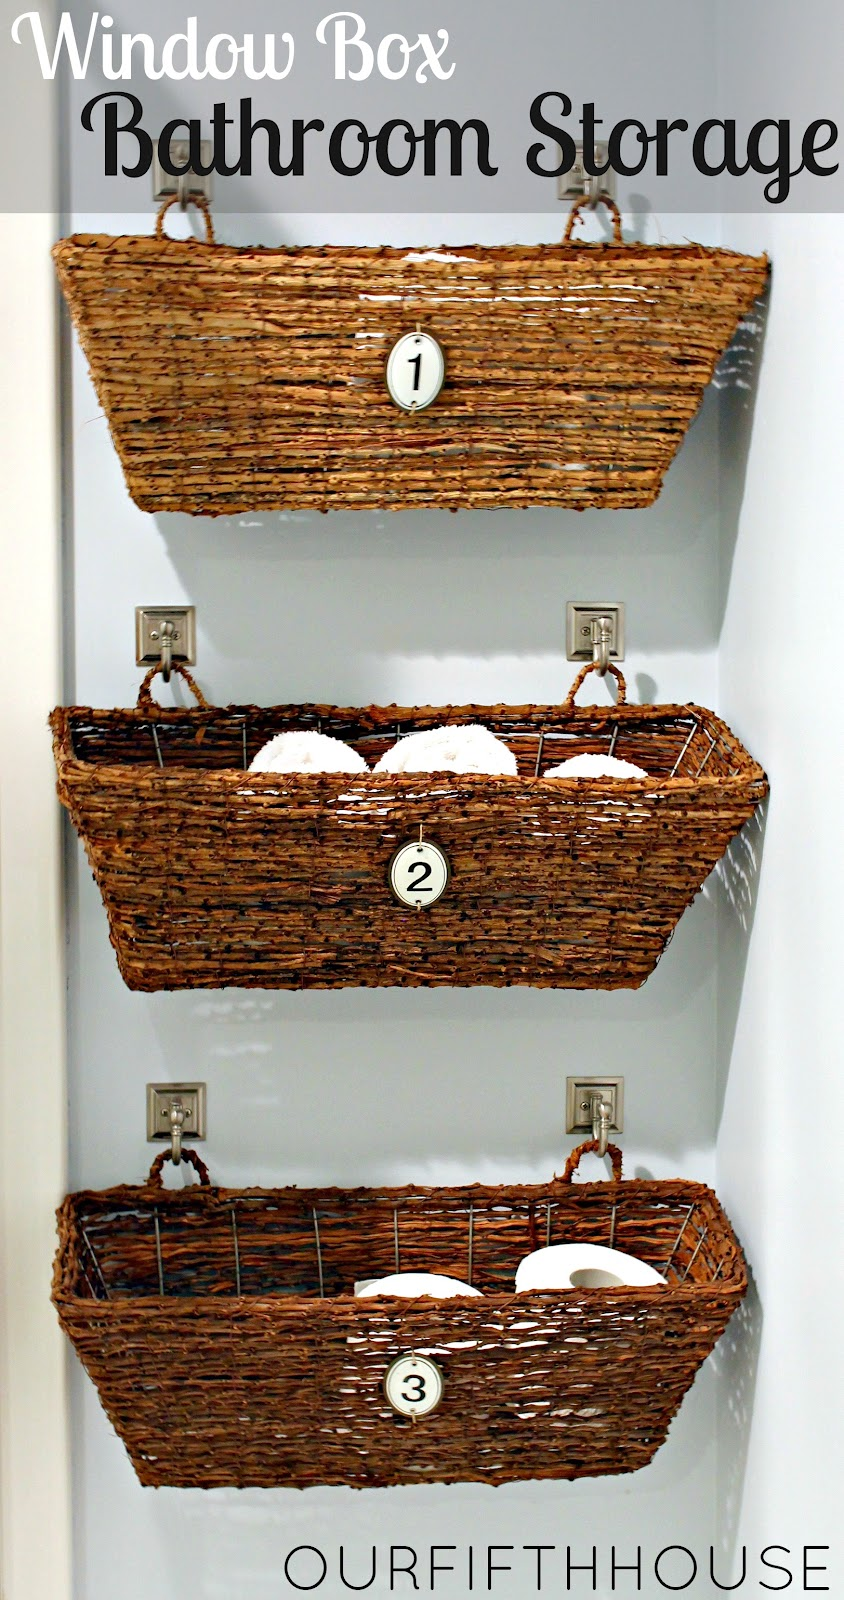 Our Fifth House: Window Box Bathroom Storage (perfect for a small